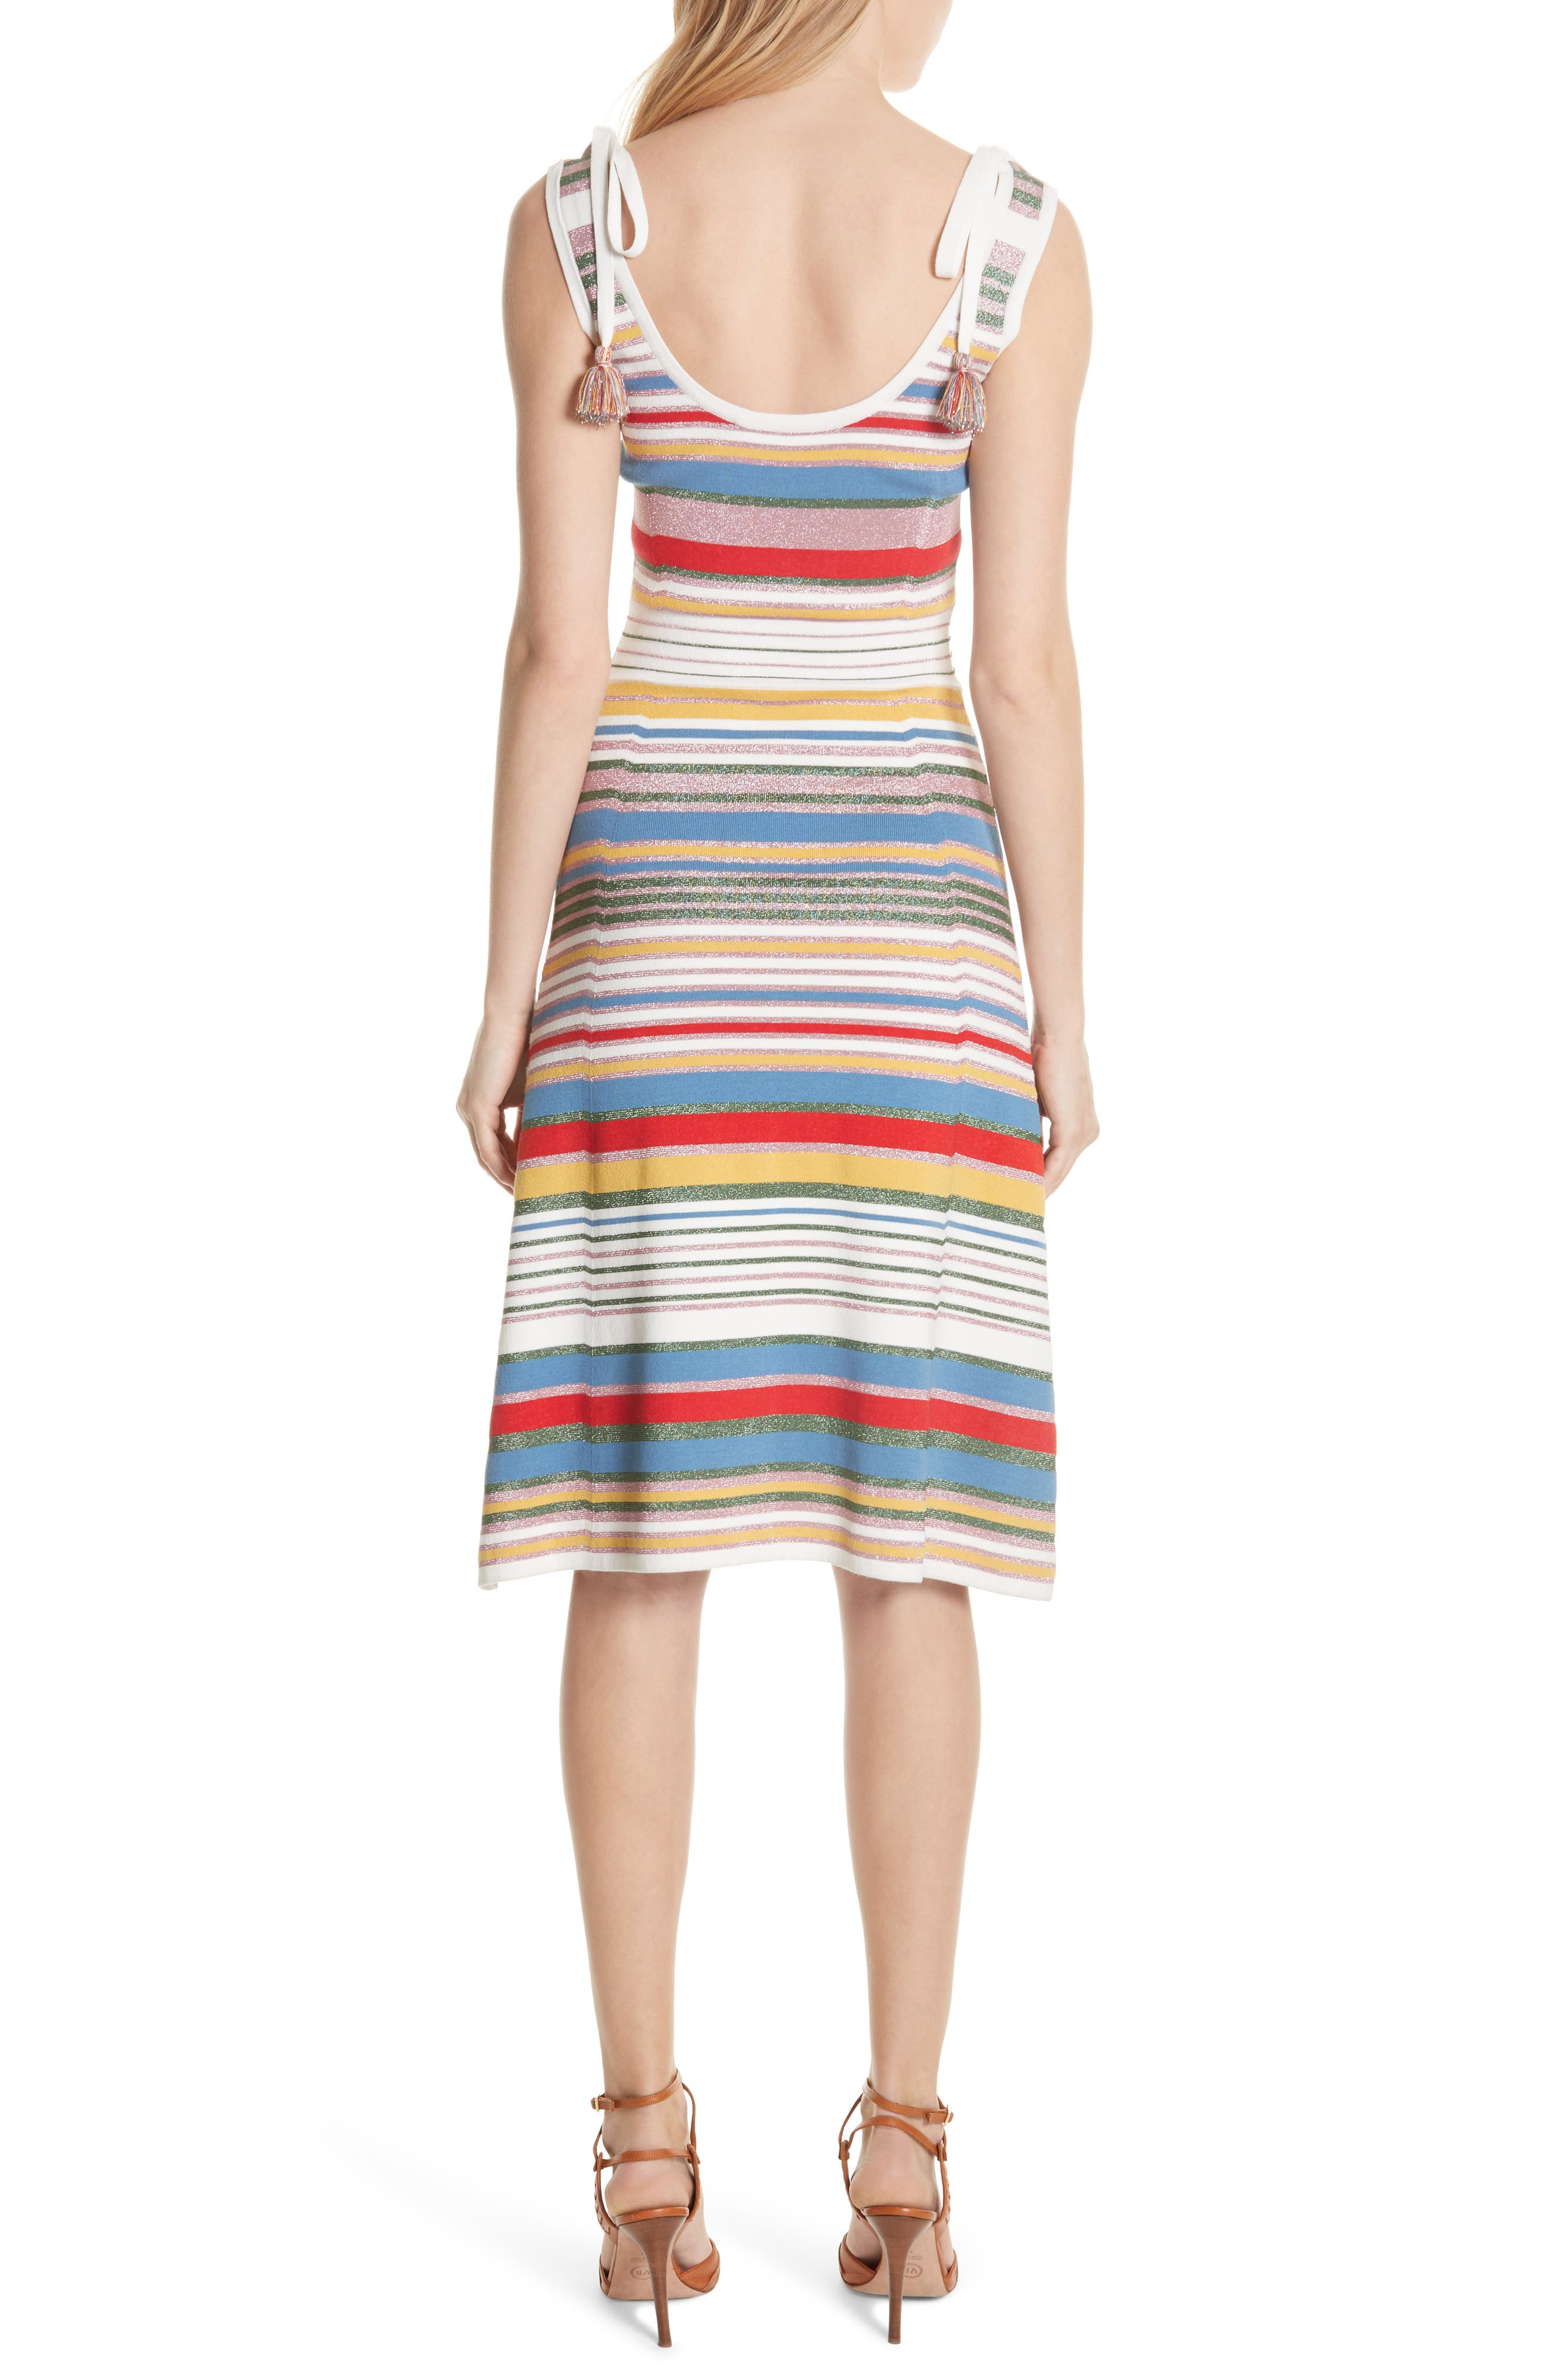 Dulce Glitter Stripe Dress,                             Alternate thumbnail 2, color,                             Multi